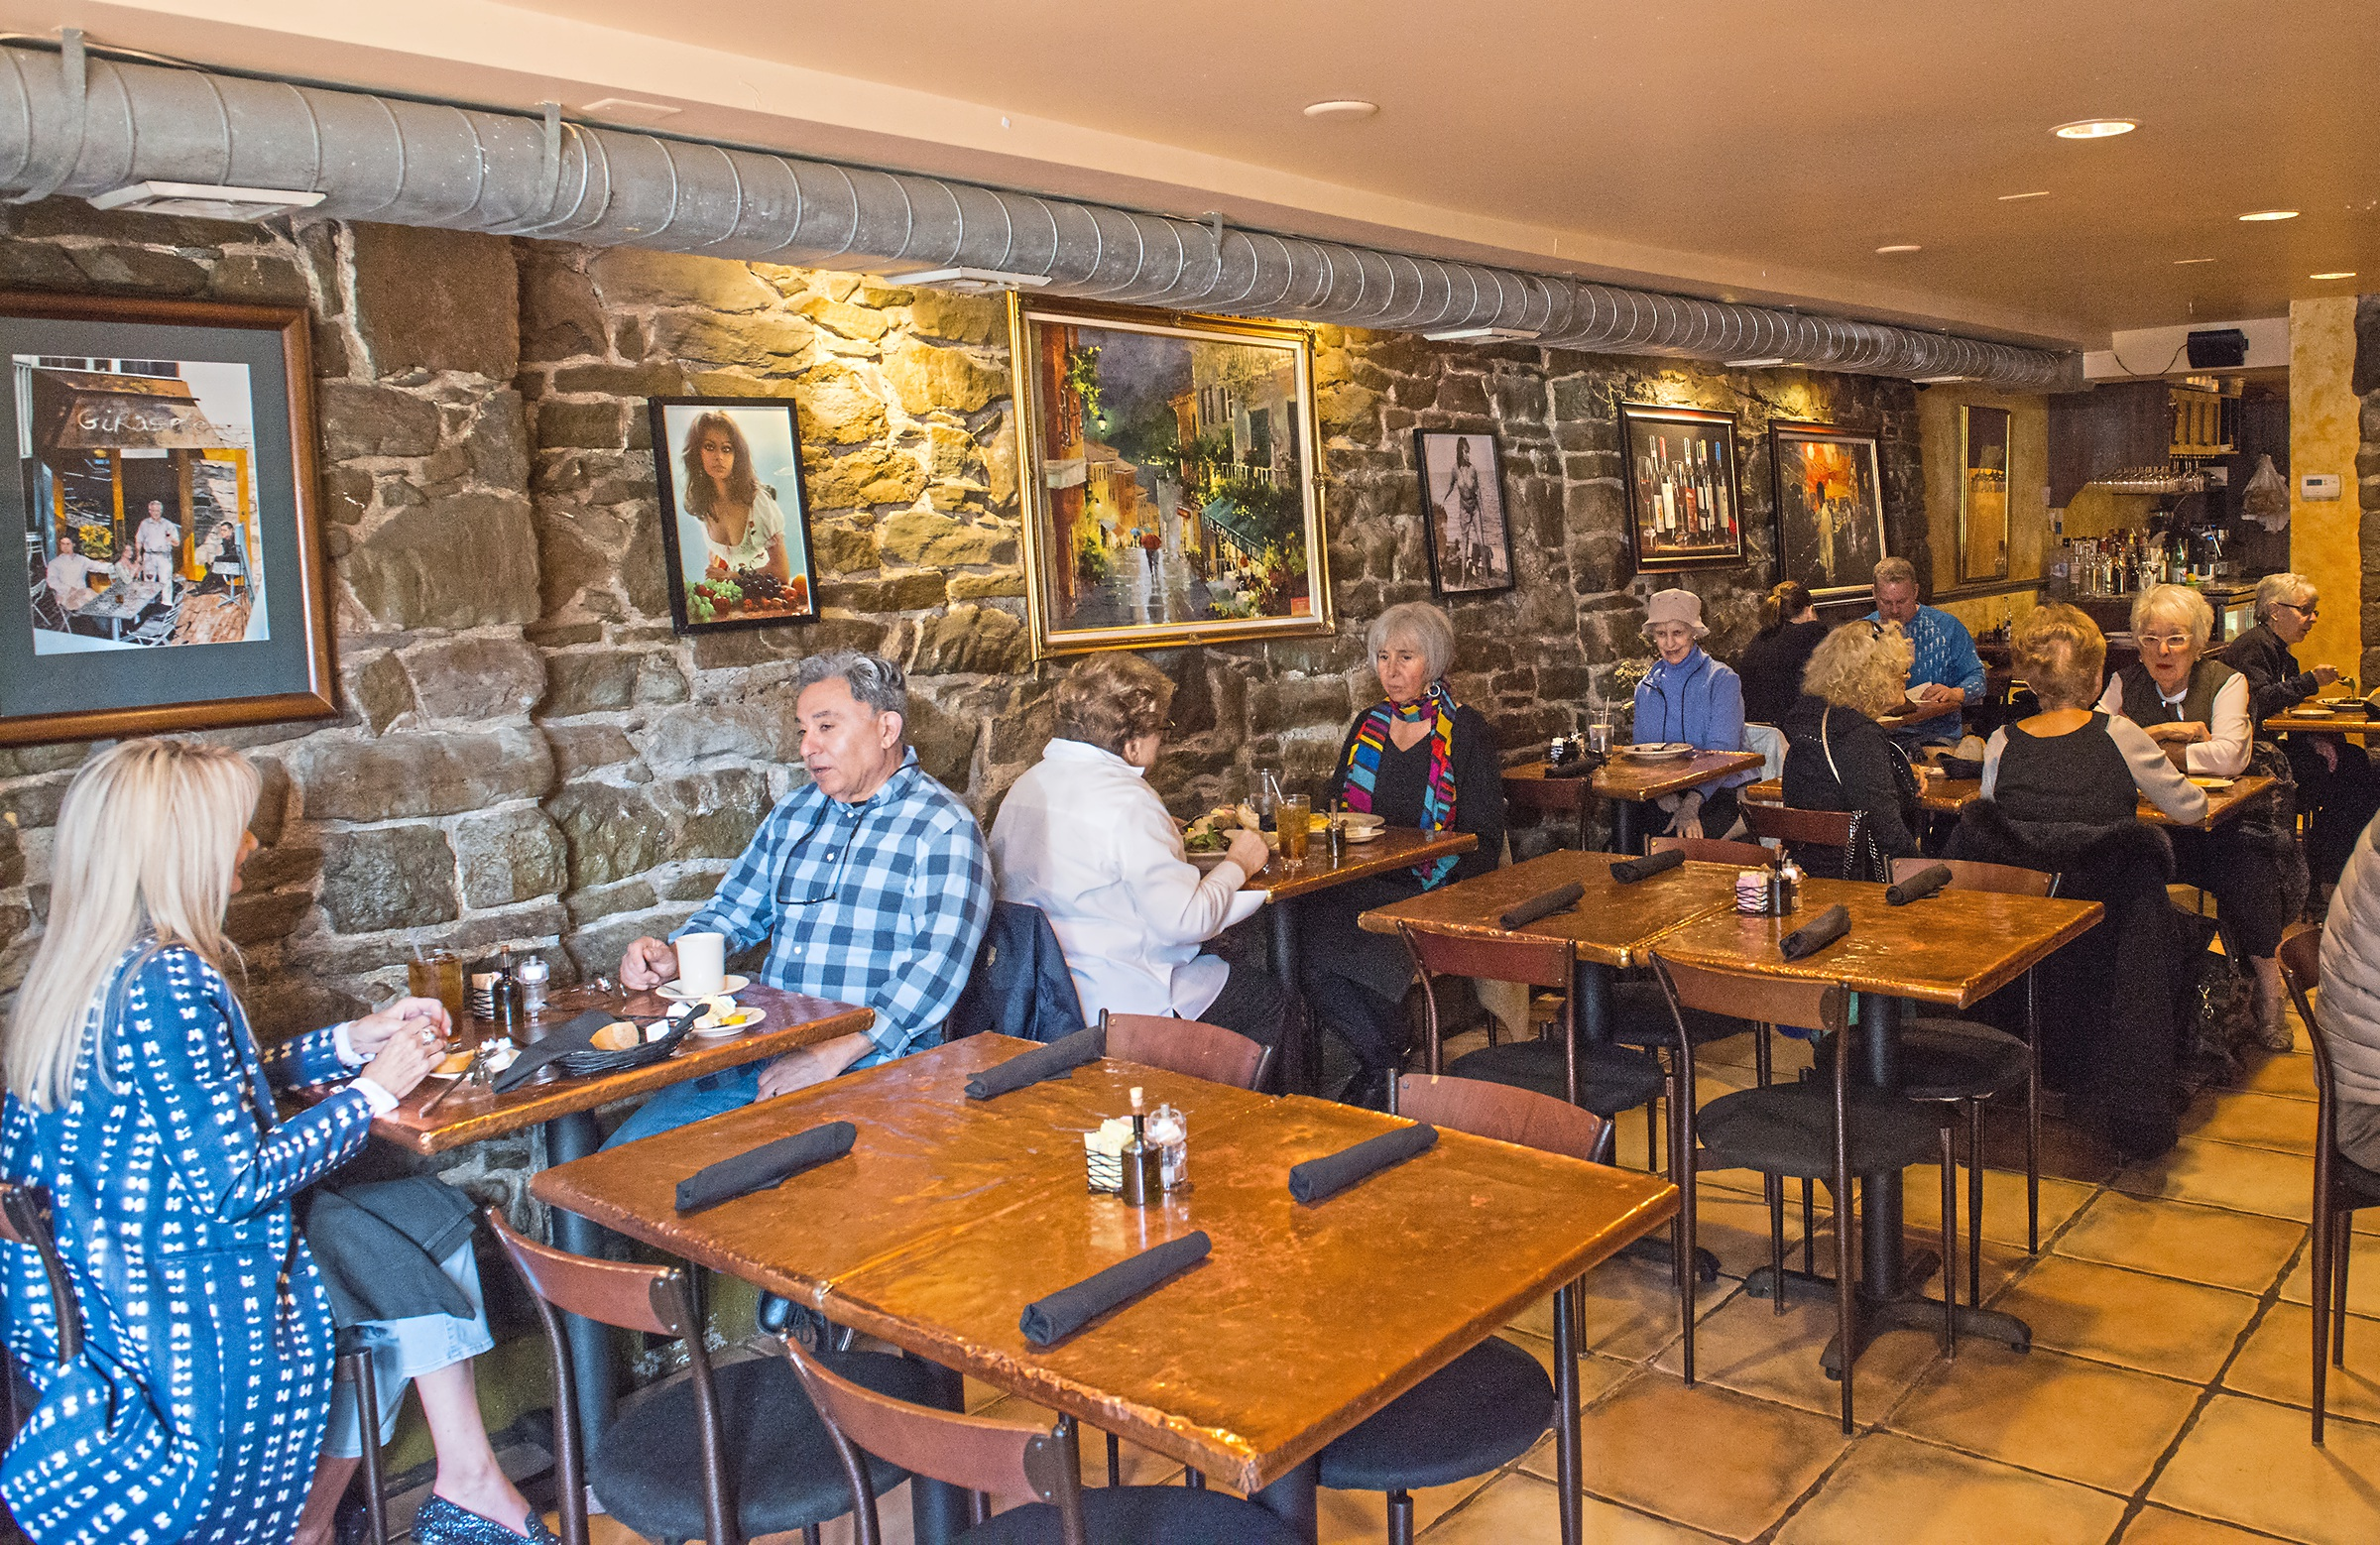 The interior of Girasole is pictured on Friday, April 27, 2018. (Lake Fong/Post-Gazette)